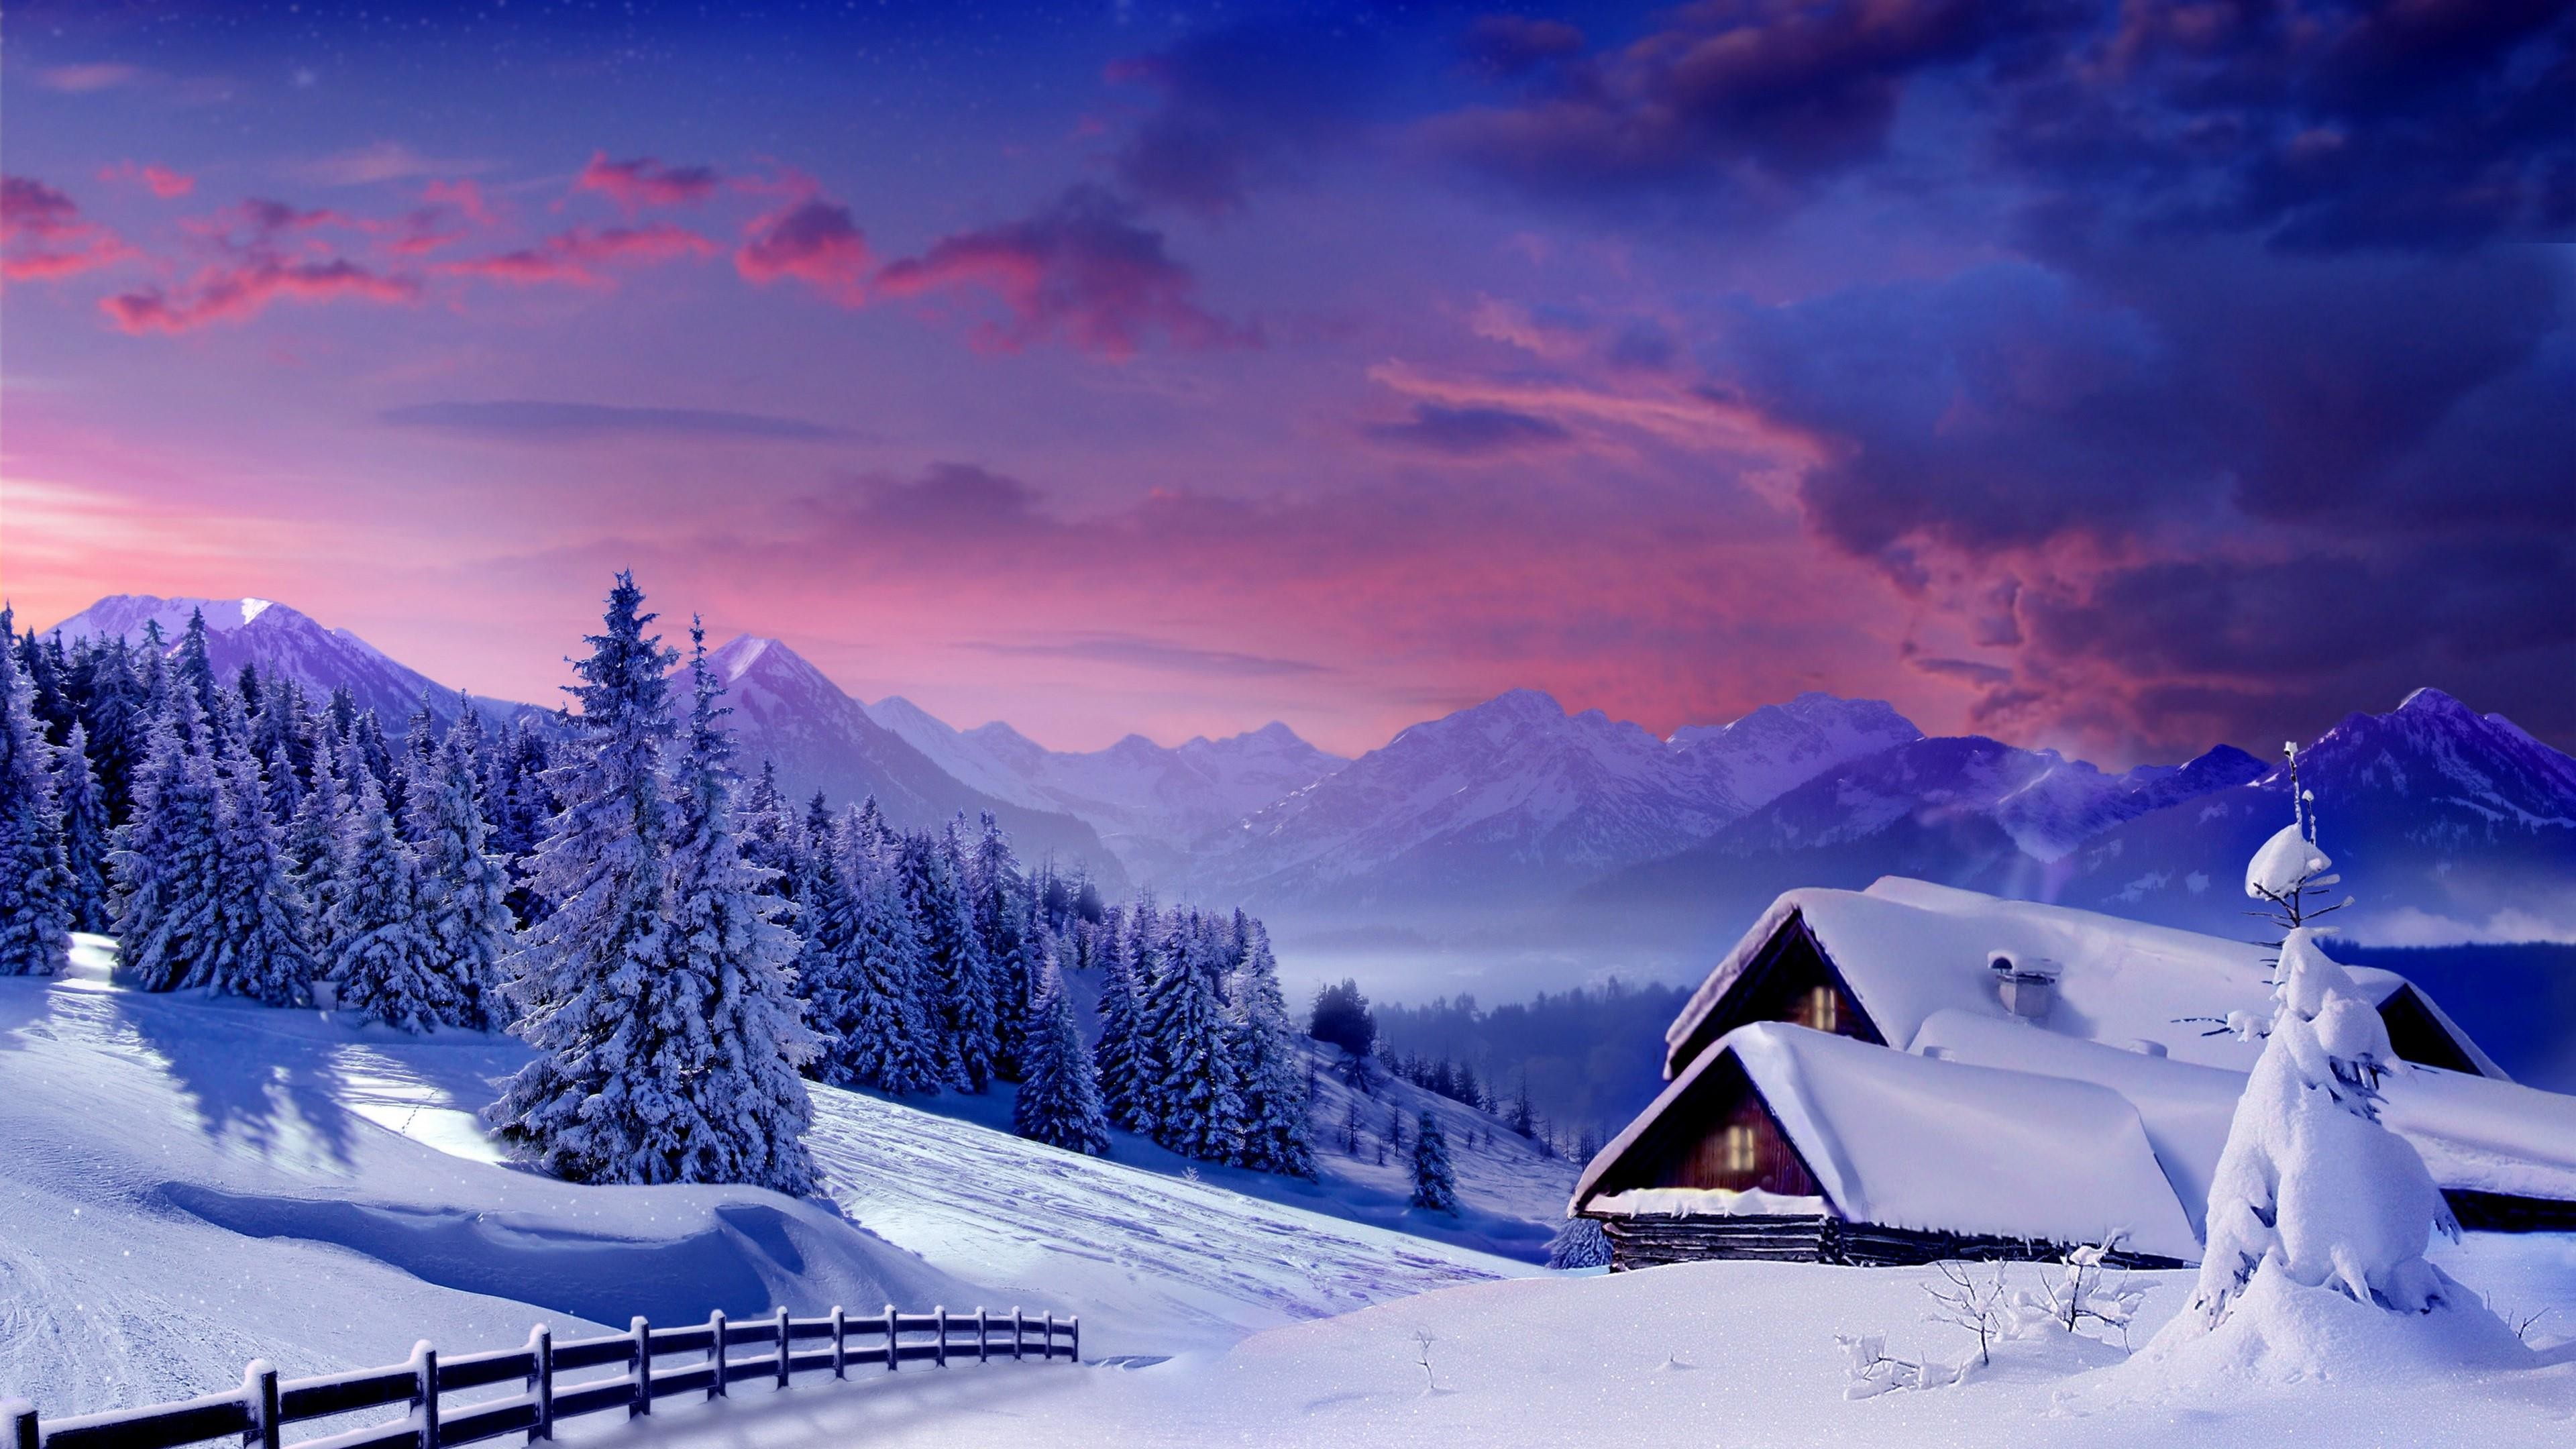 Res: 3840x2160, Snowy House Mountain House Wallpaper | Wallpaper Studio 10 | Tens of  thousands HD and UltraHD wallpapers for Android, Windows and Xbox